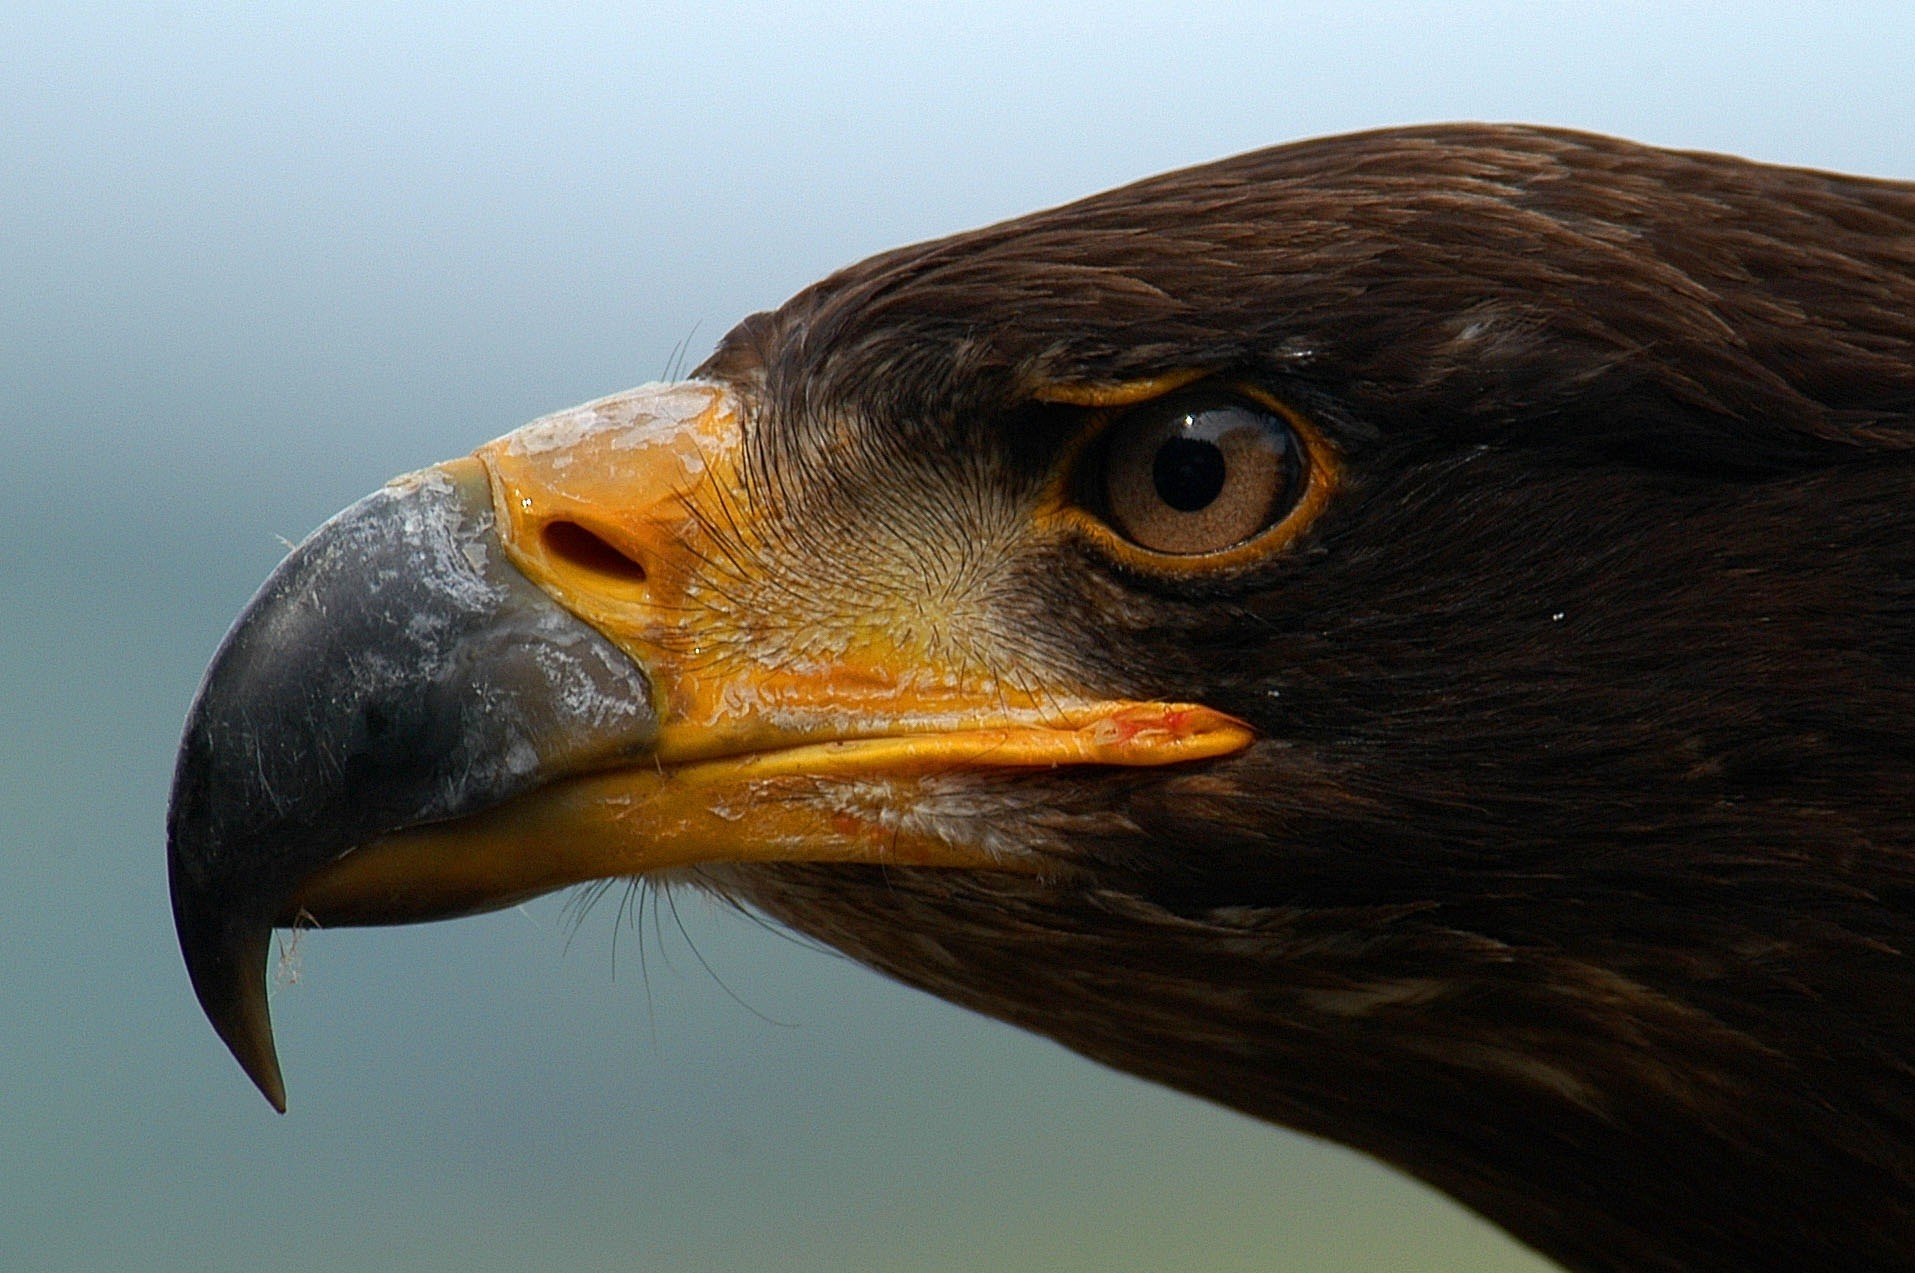 128535 download wallpaper Animals, Eagle, Beak, Predator, Eyes, Profile screensavers and pictures for free